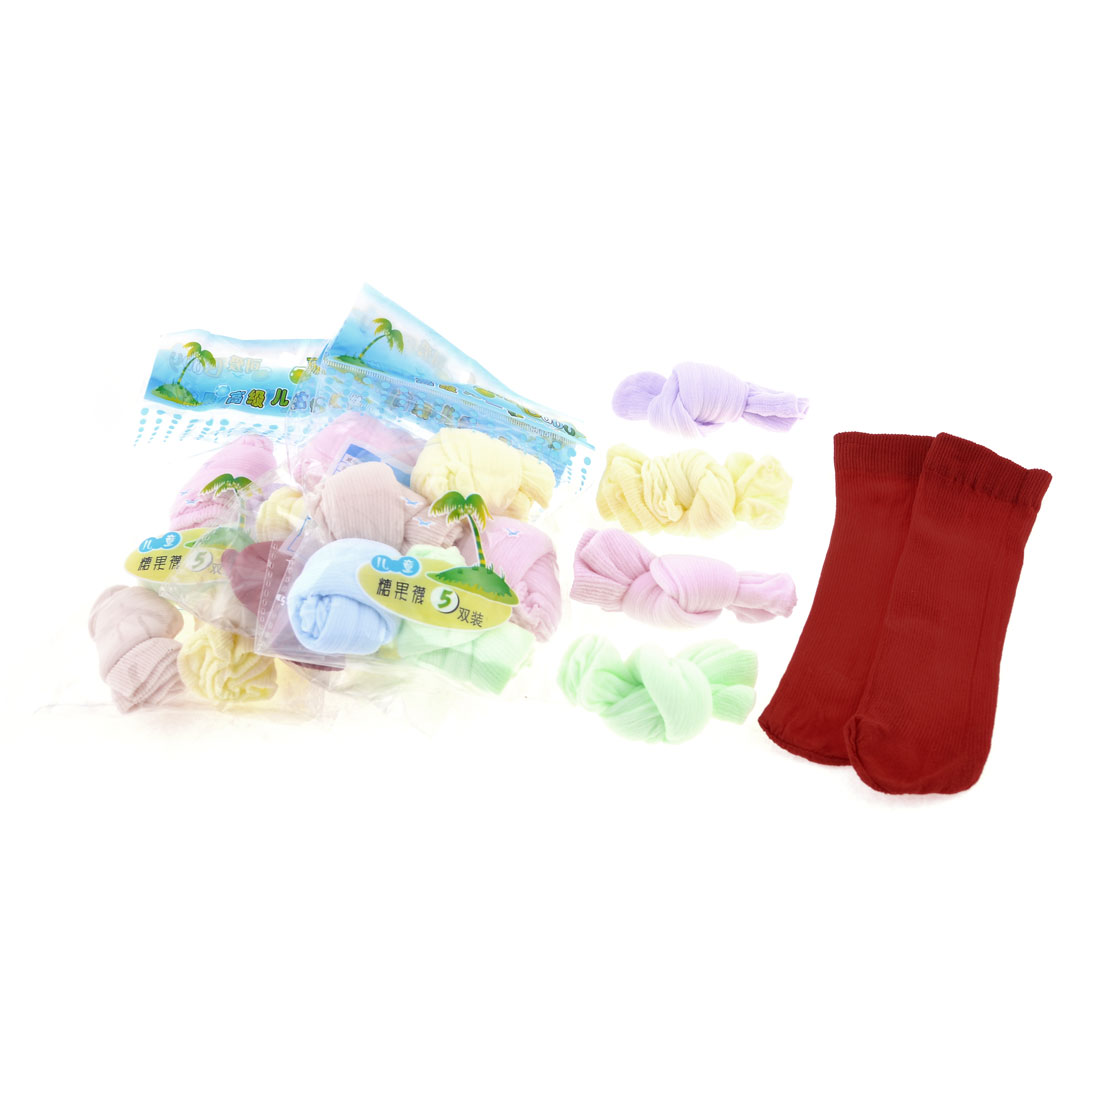 20 Pairs Terylene Spandex Elastic Colorful Candy Socks for Kids